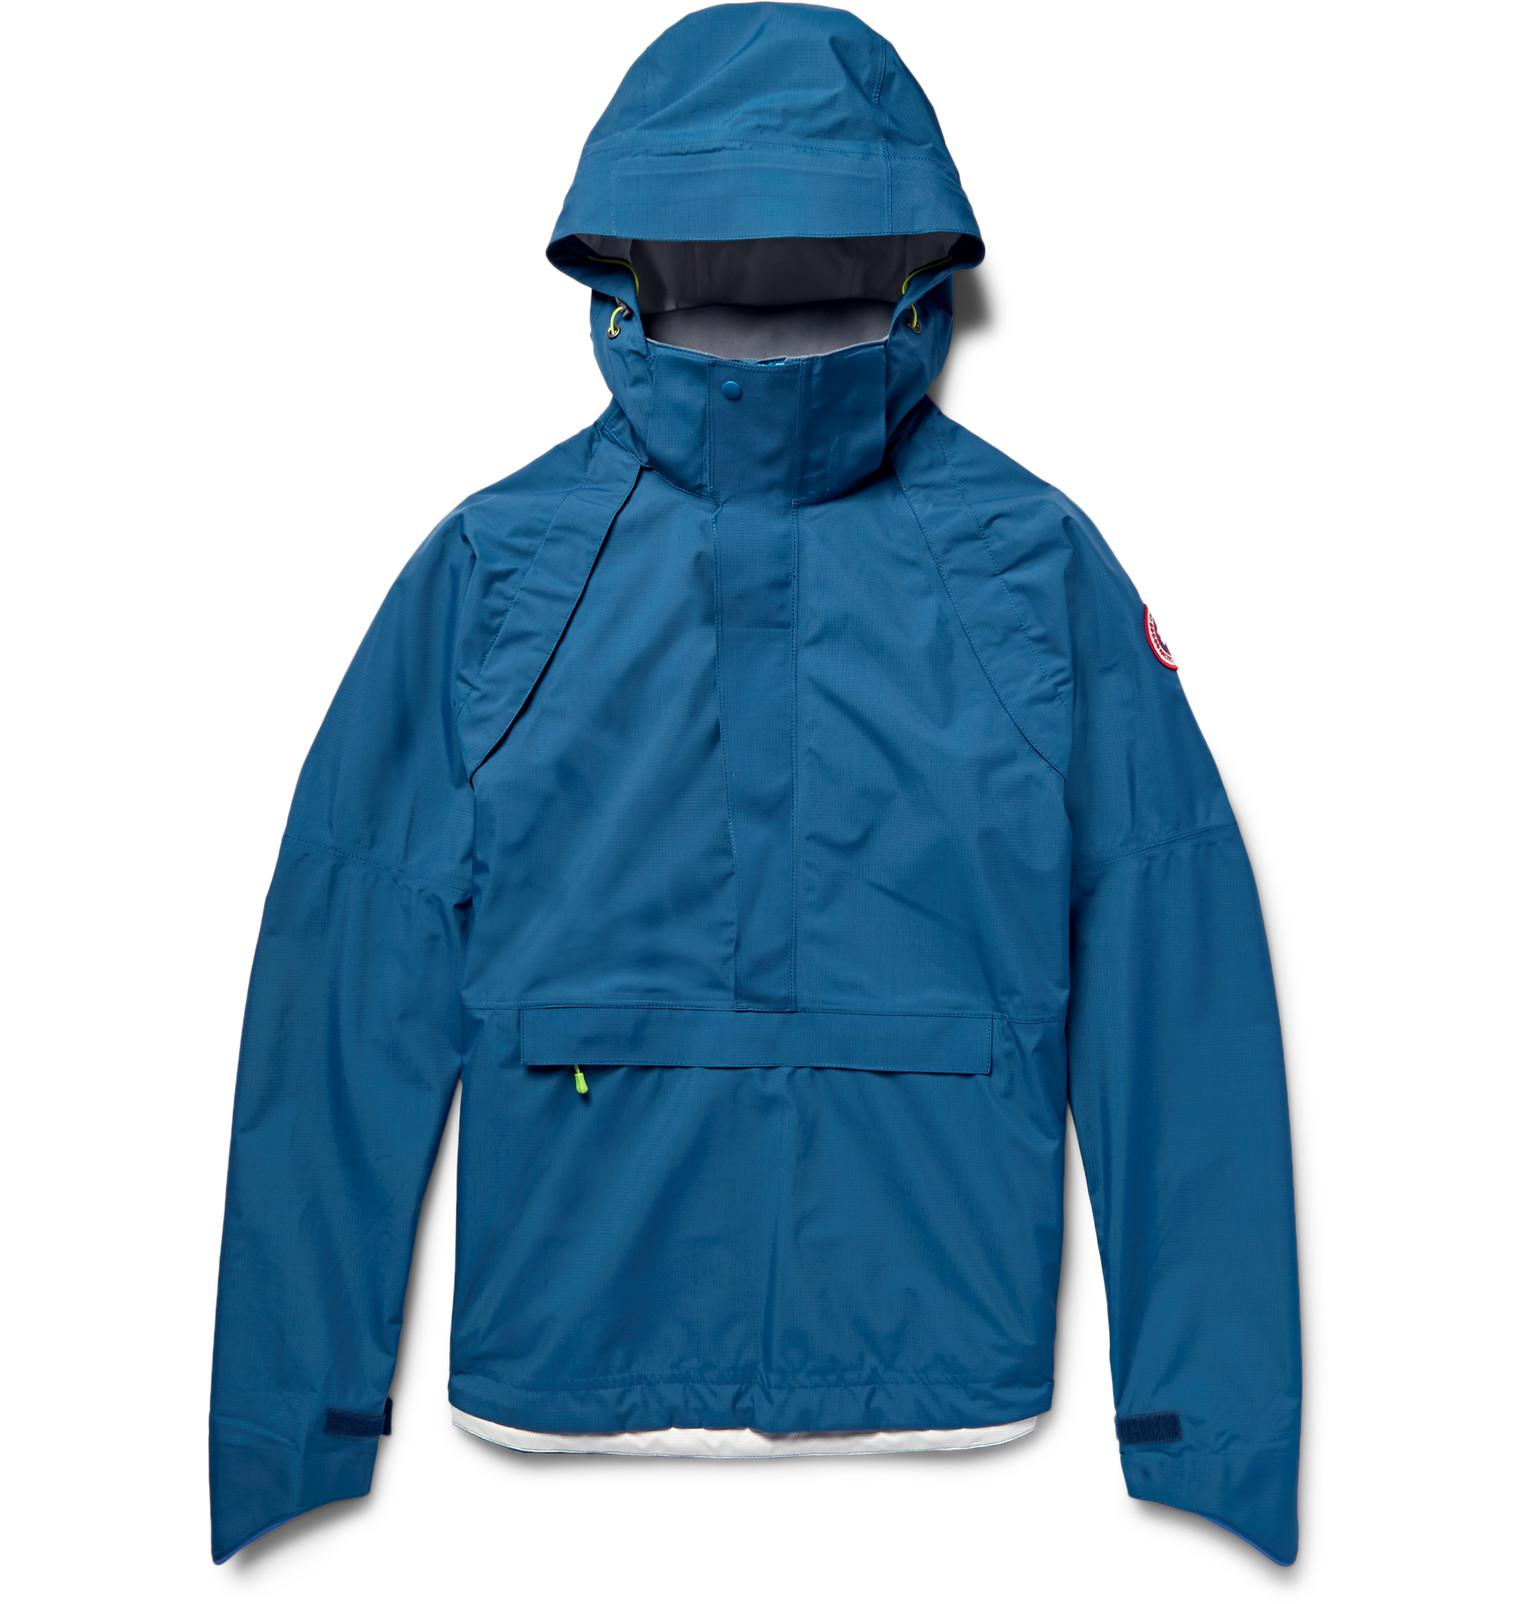 Canada Goose Brunswick Convertible Shell Anorak in Blue for Men - Lyst 04ce57f4aff8